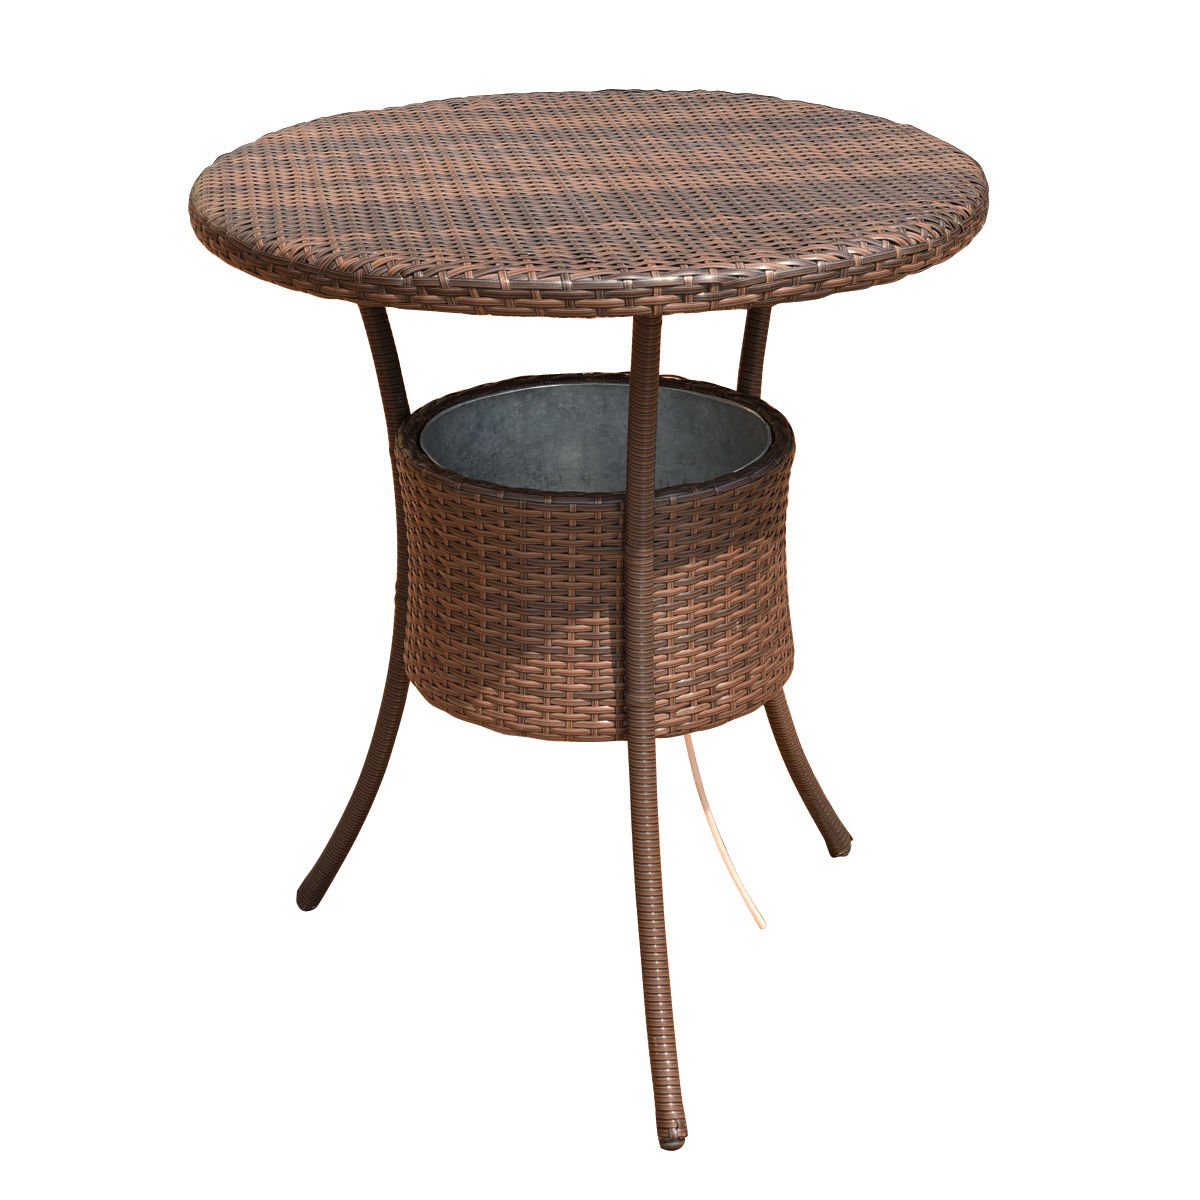 """Costway 31.5"""" 7.9-Gal Cool Bar Rattan Style Outdoor Patio Party Deck Pool Cooler Table With Ice Bucket, Brown"""